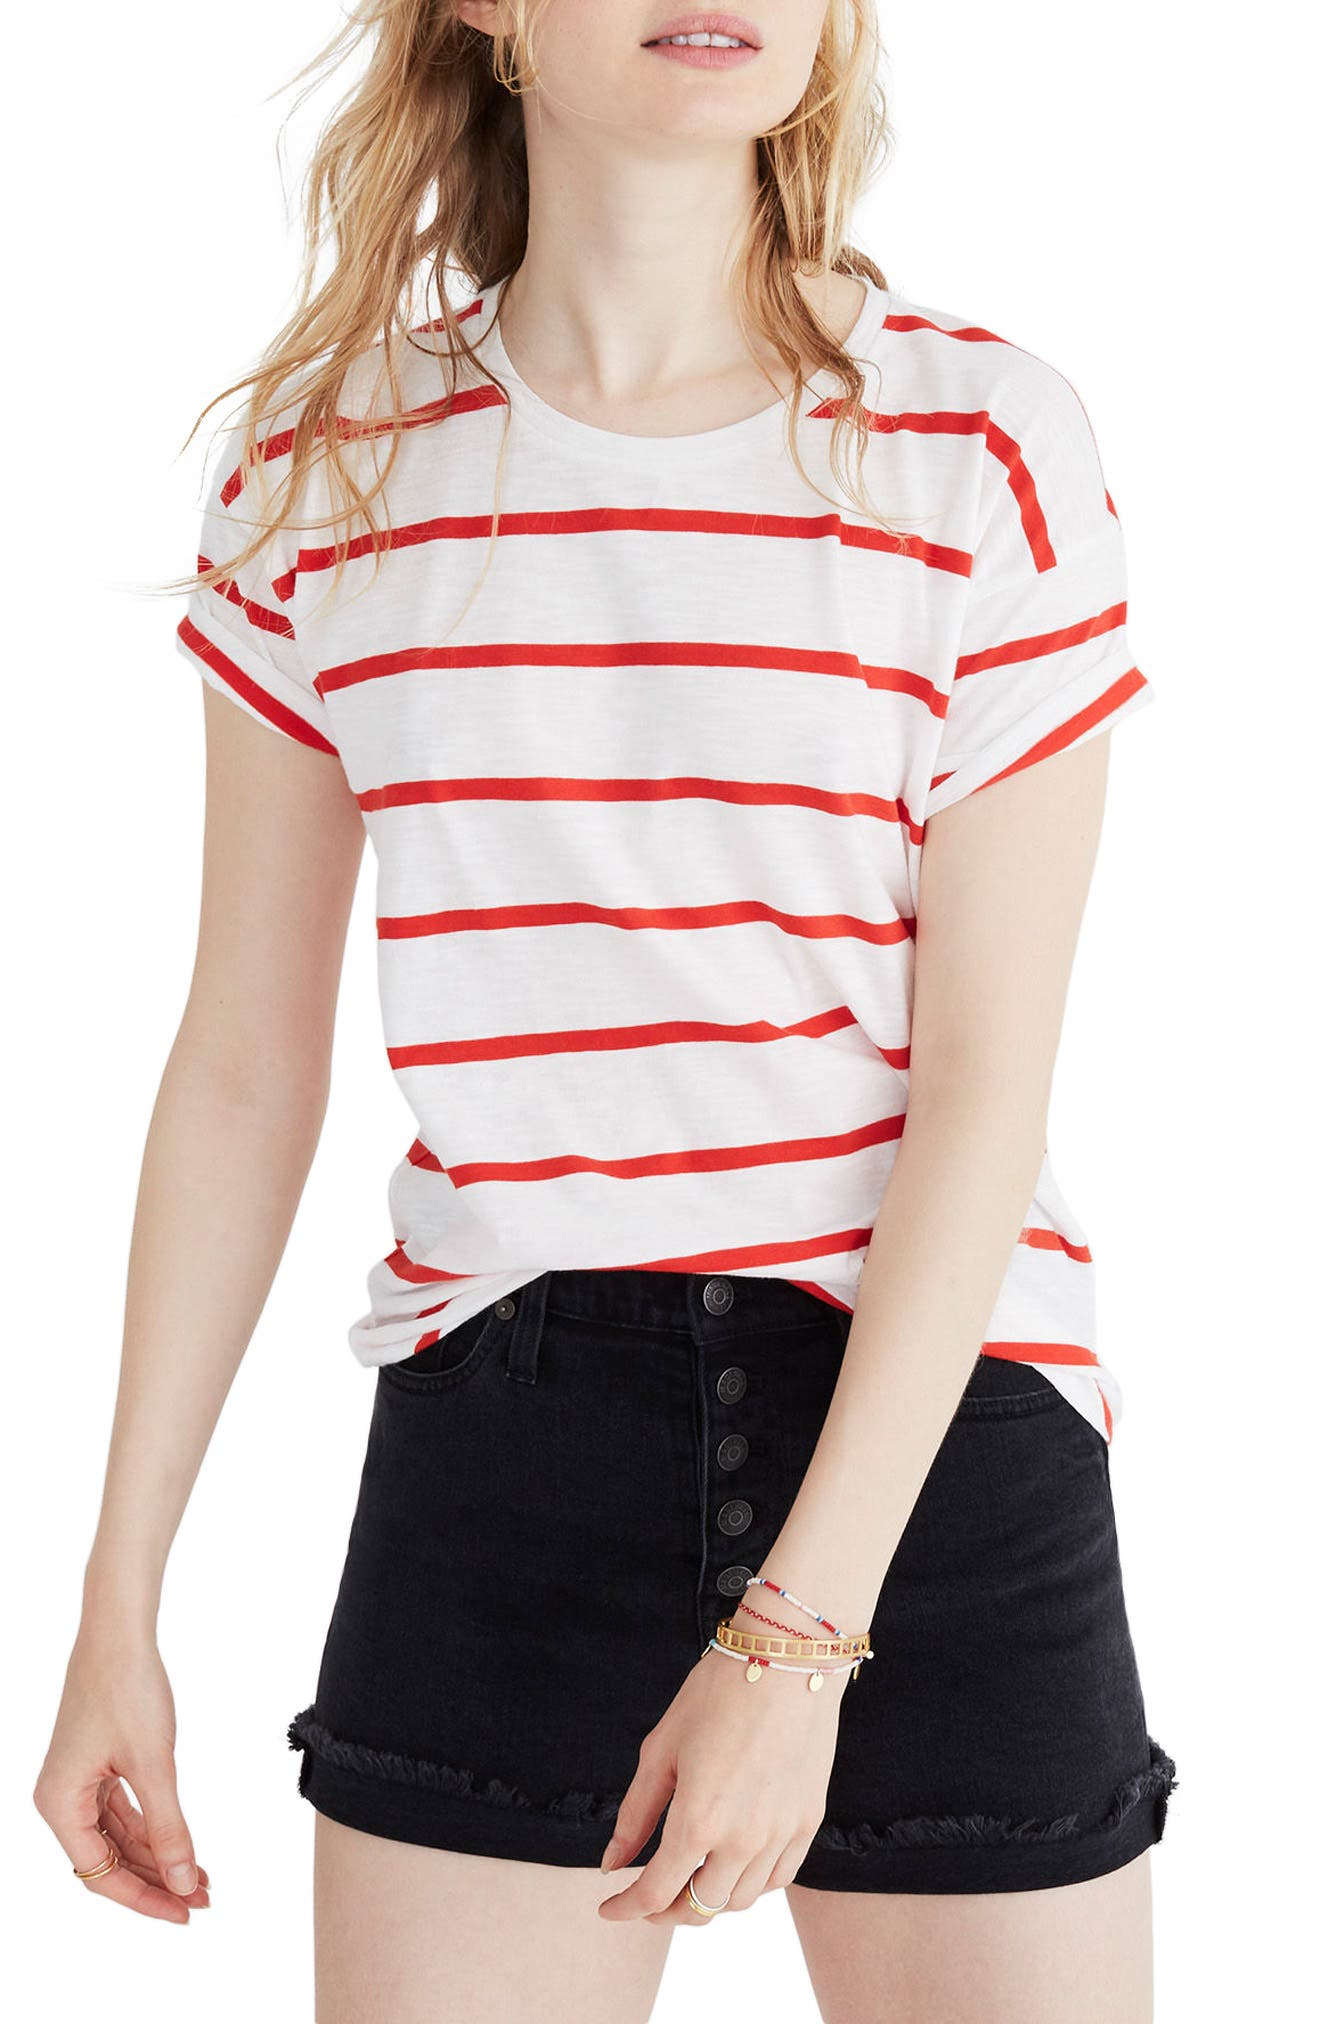 Whisper Cotton Crewneck Tee,                         Main,                         color, BRIGHT IVORY/ RED